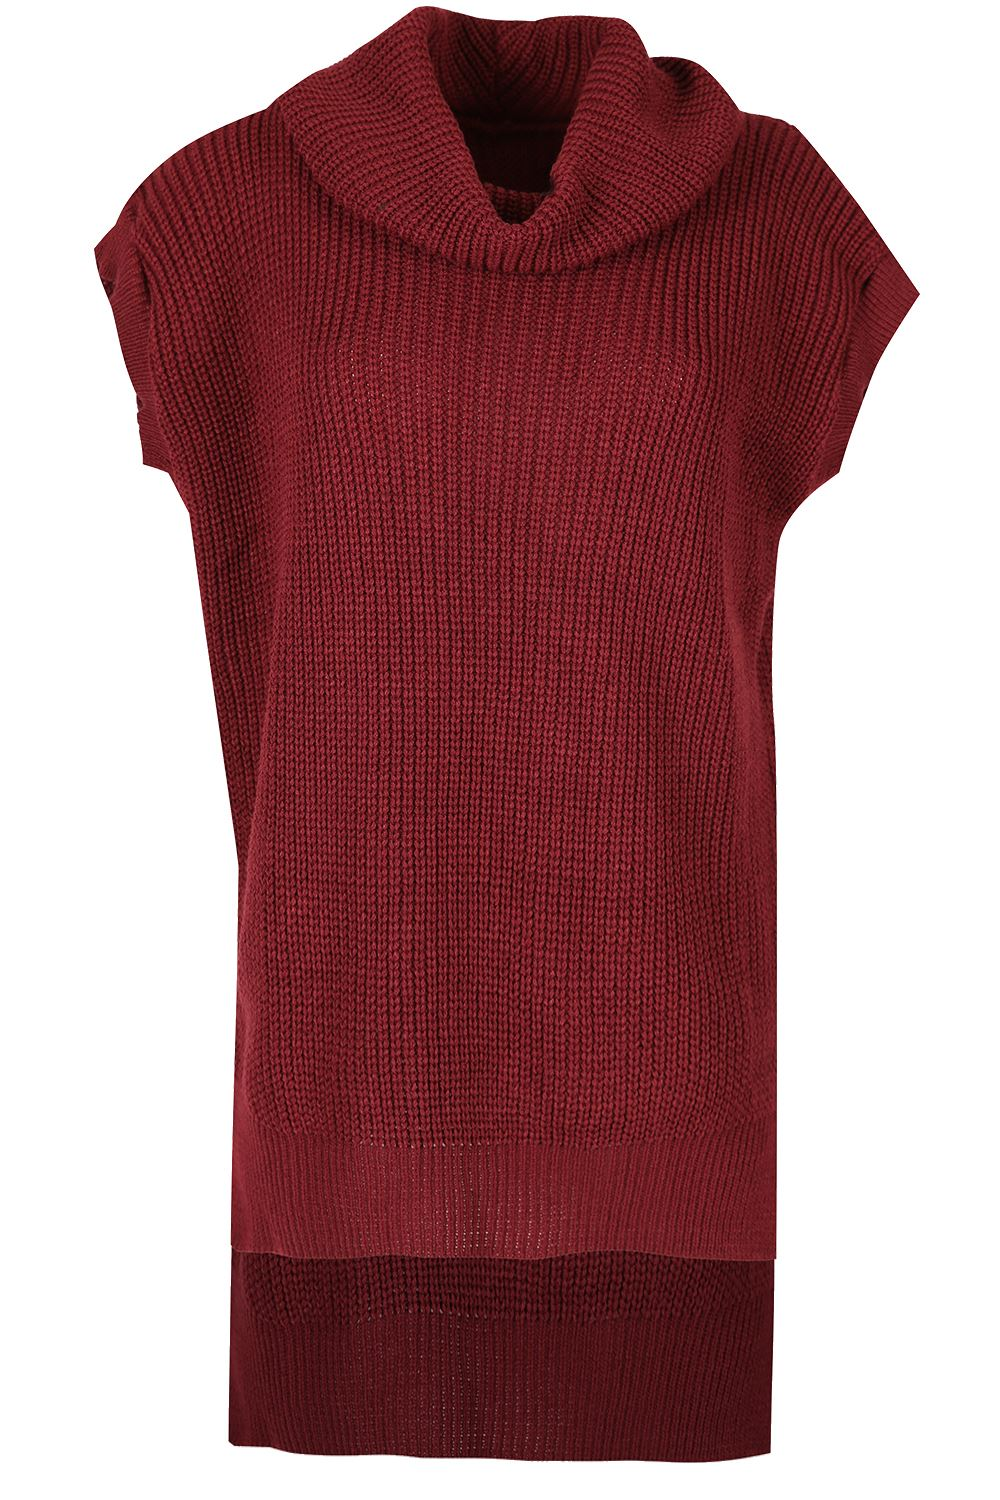 Womens-Ladies-Cowl-Neck-Sleeveless-High-Low-Chunky-Knit-Baggy-Oversize-Jumper